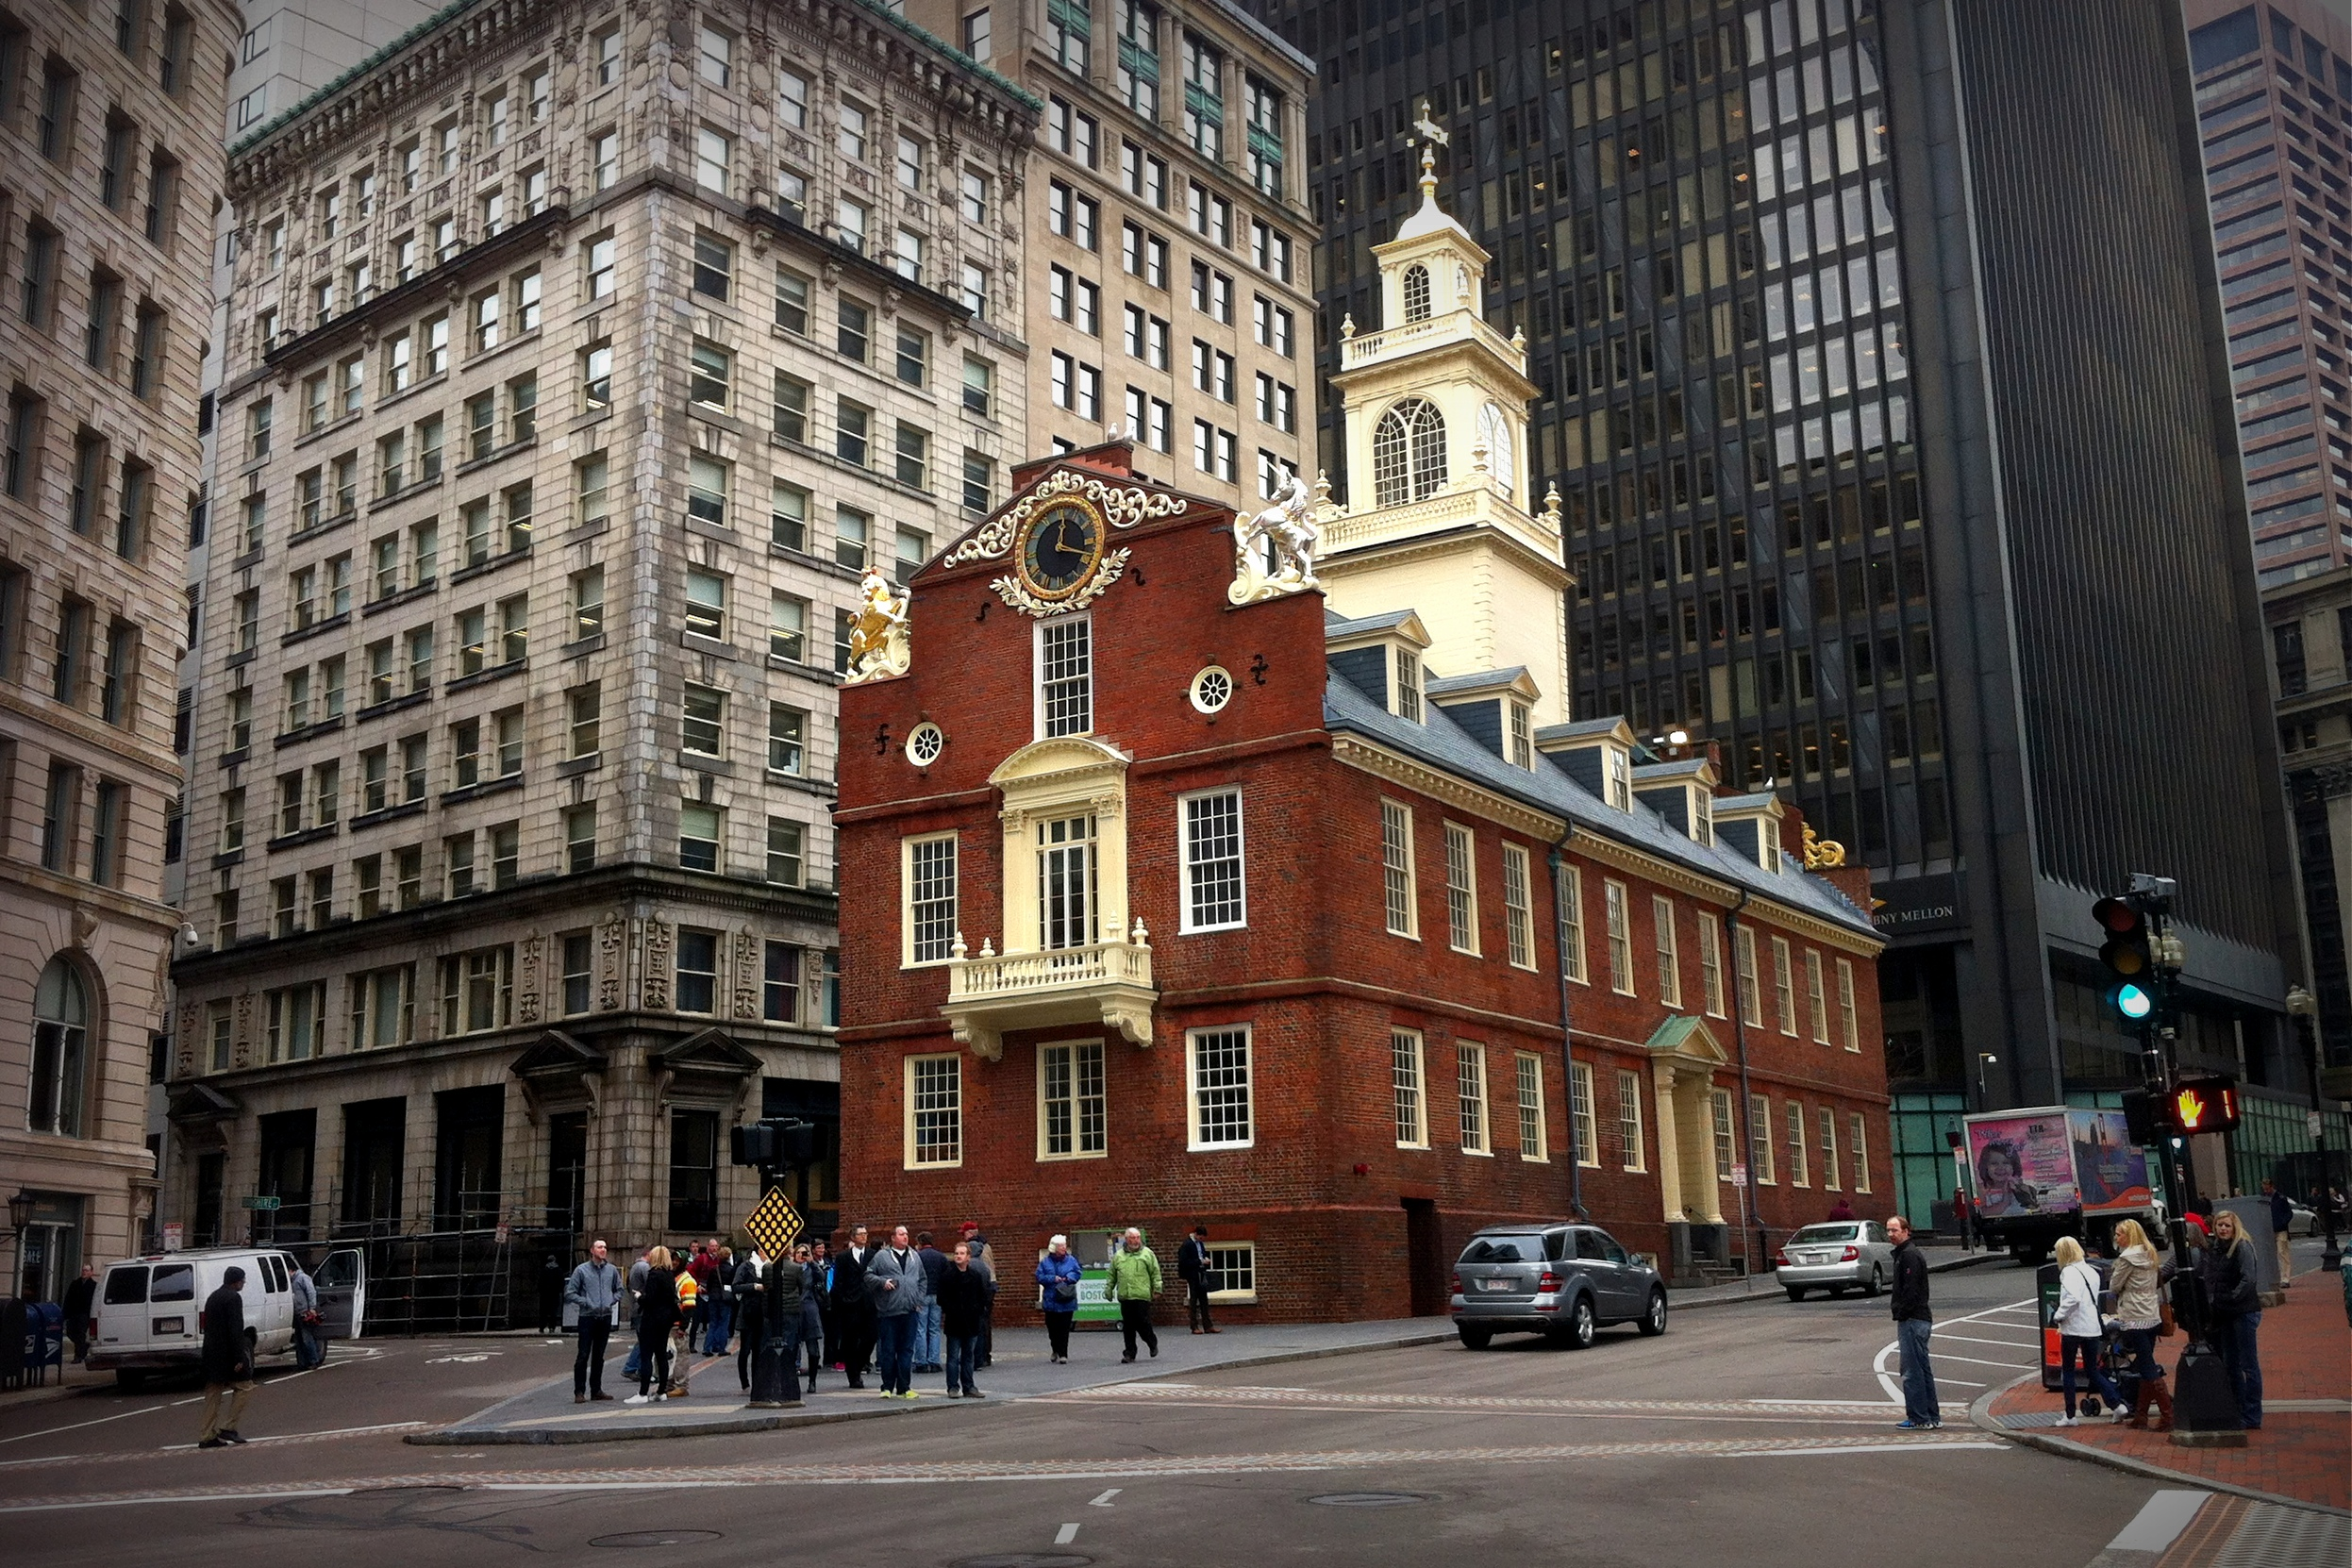 A few photos that will make you want to visit Boston